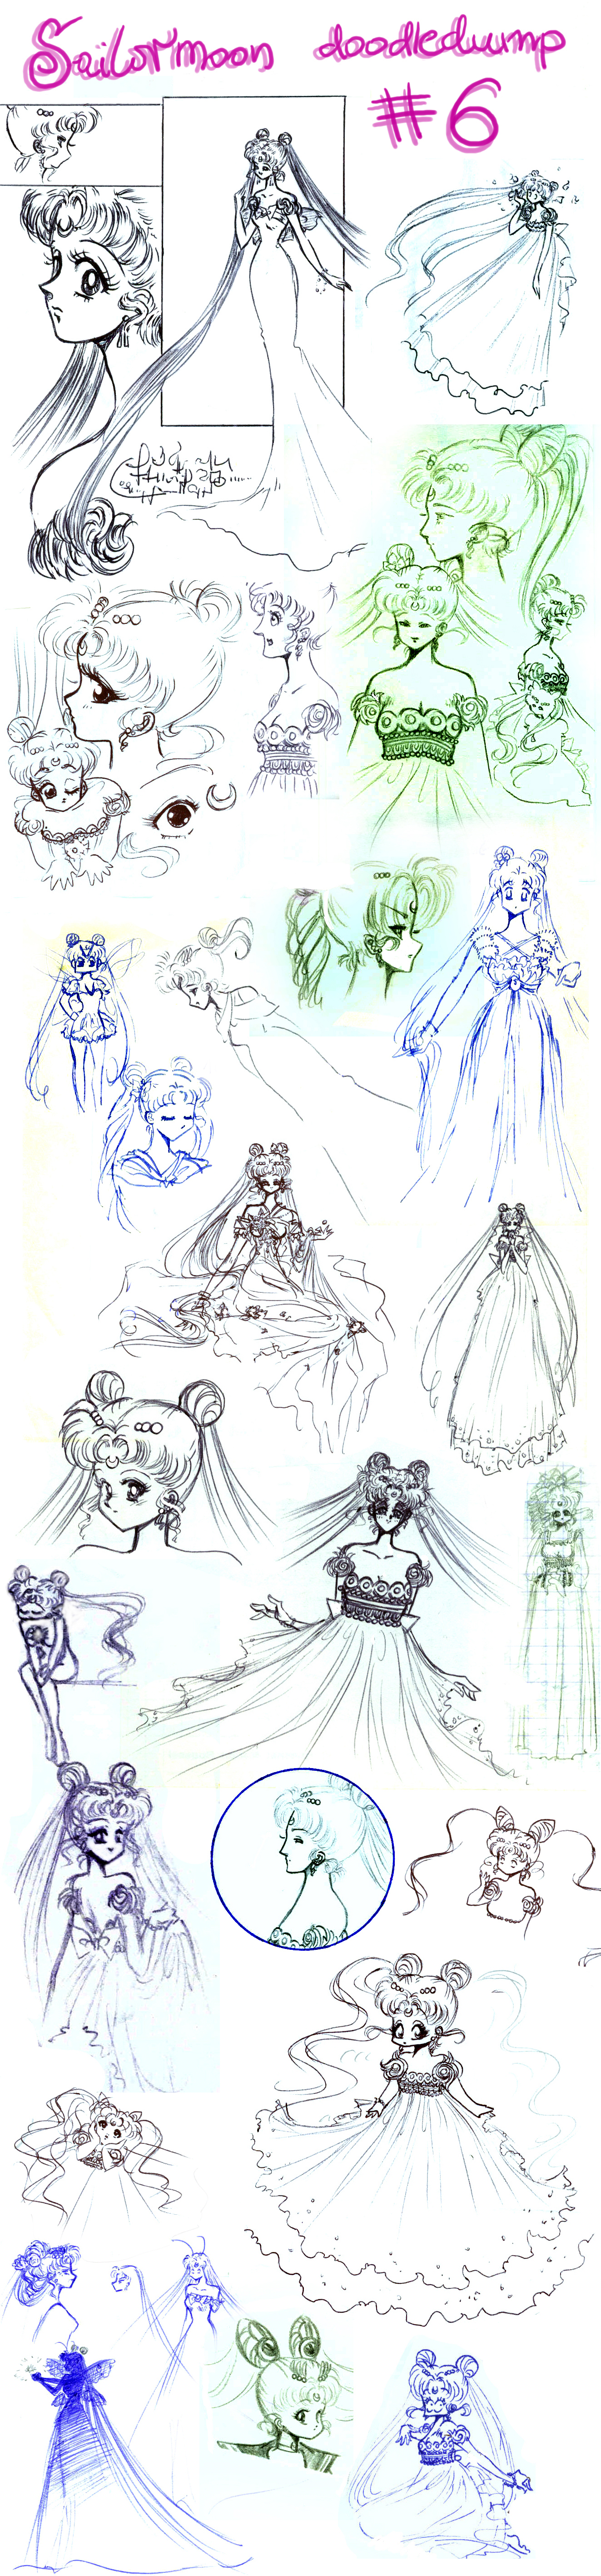 Sailormoon doodledump 6 by NitroFieja